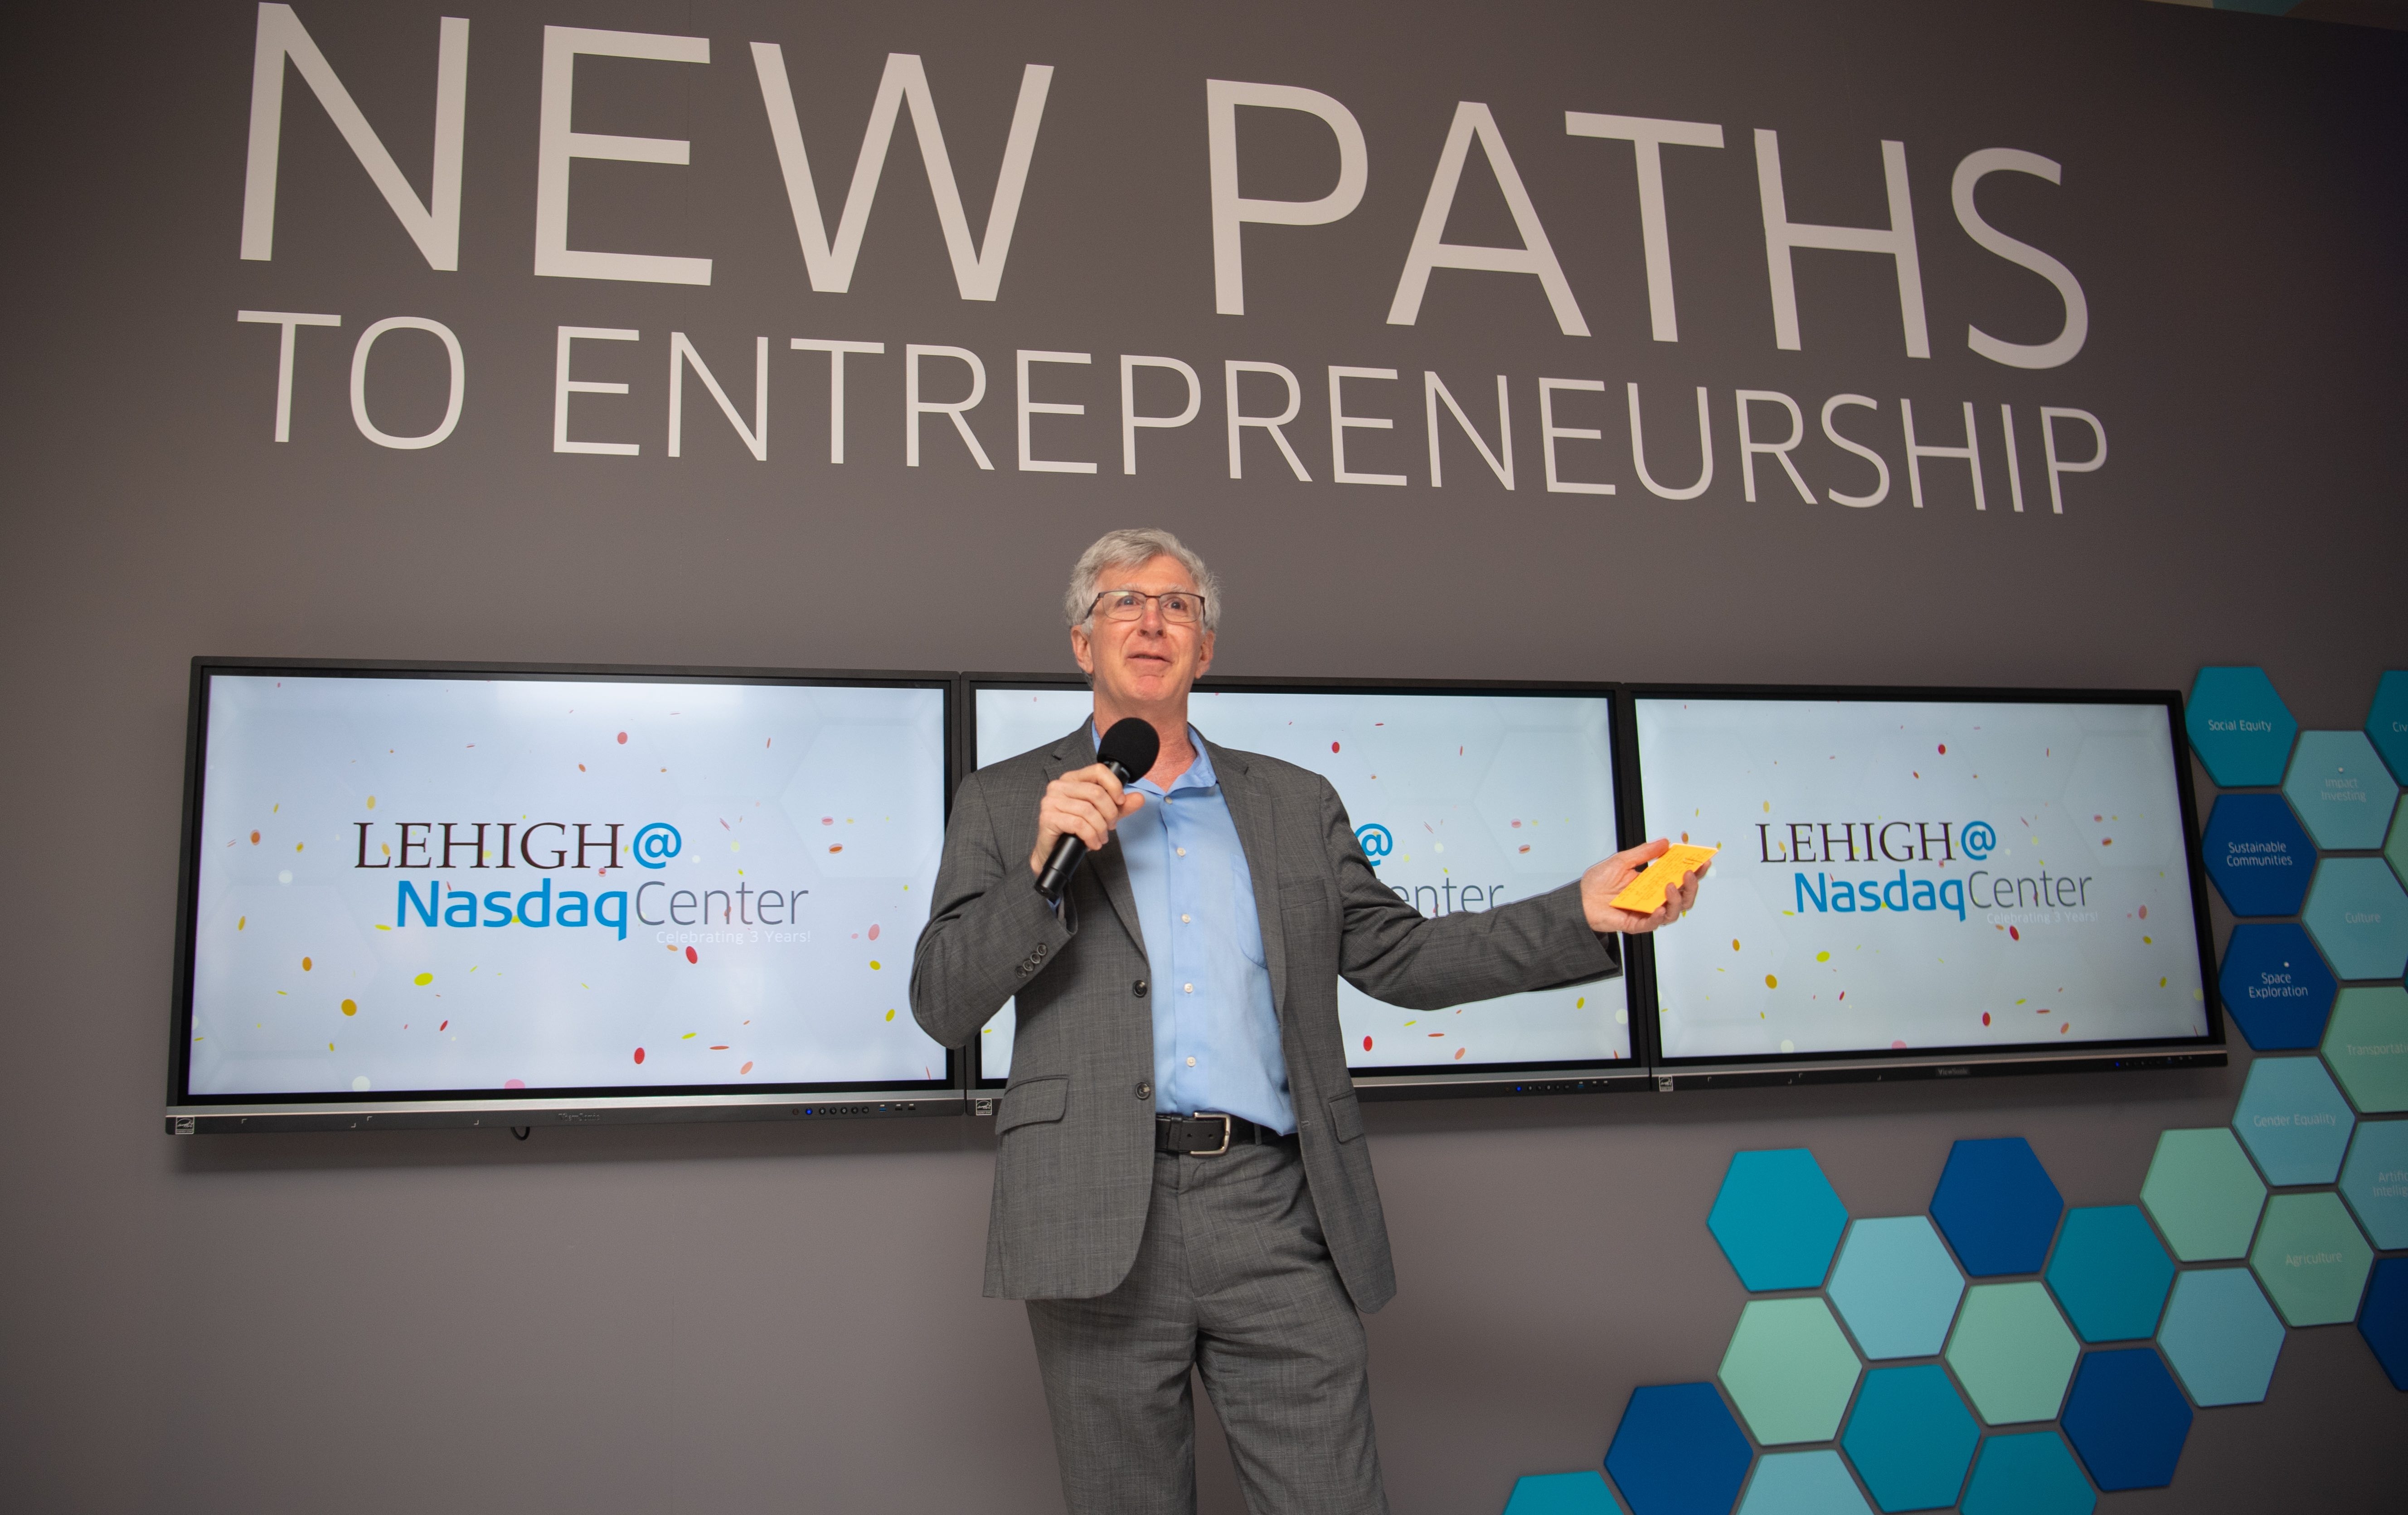 Lehigh President John Simon at New Paths to Entrepreneurship exhibit opening